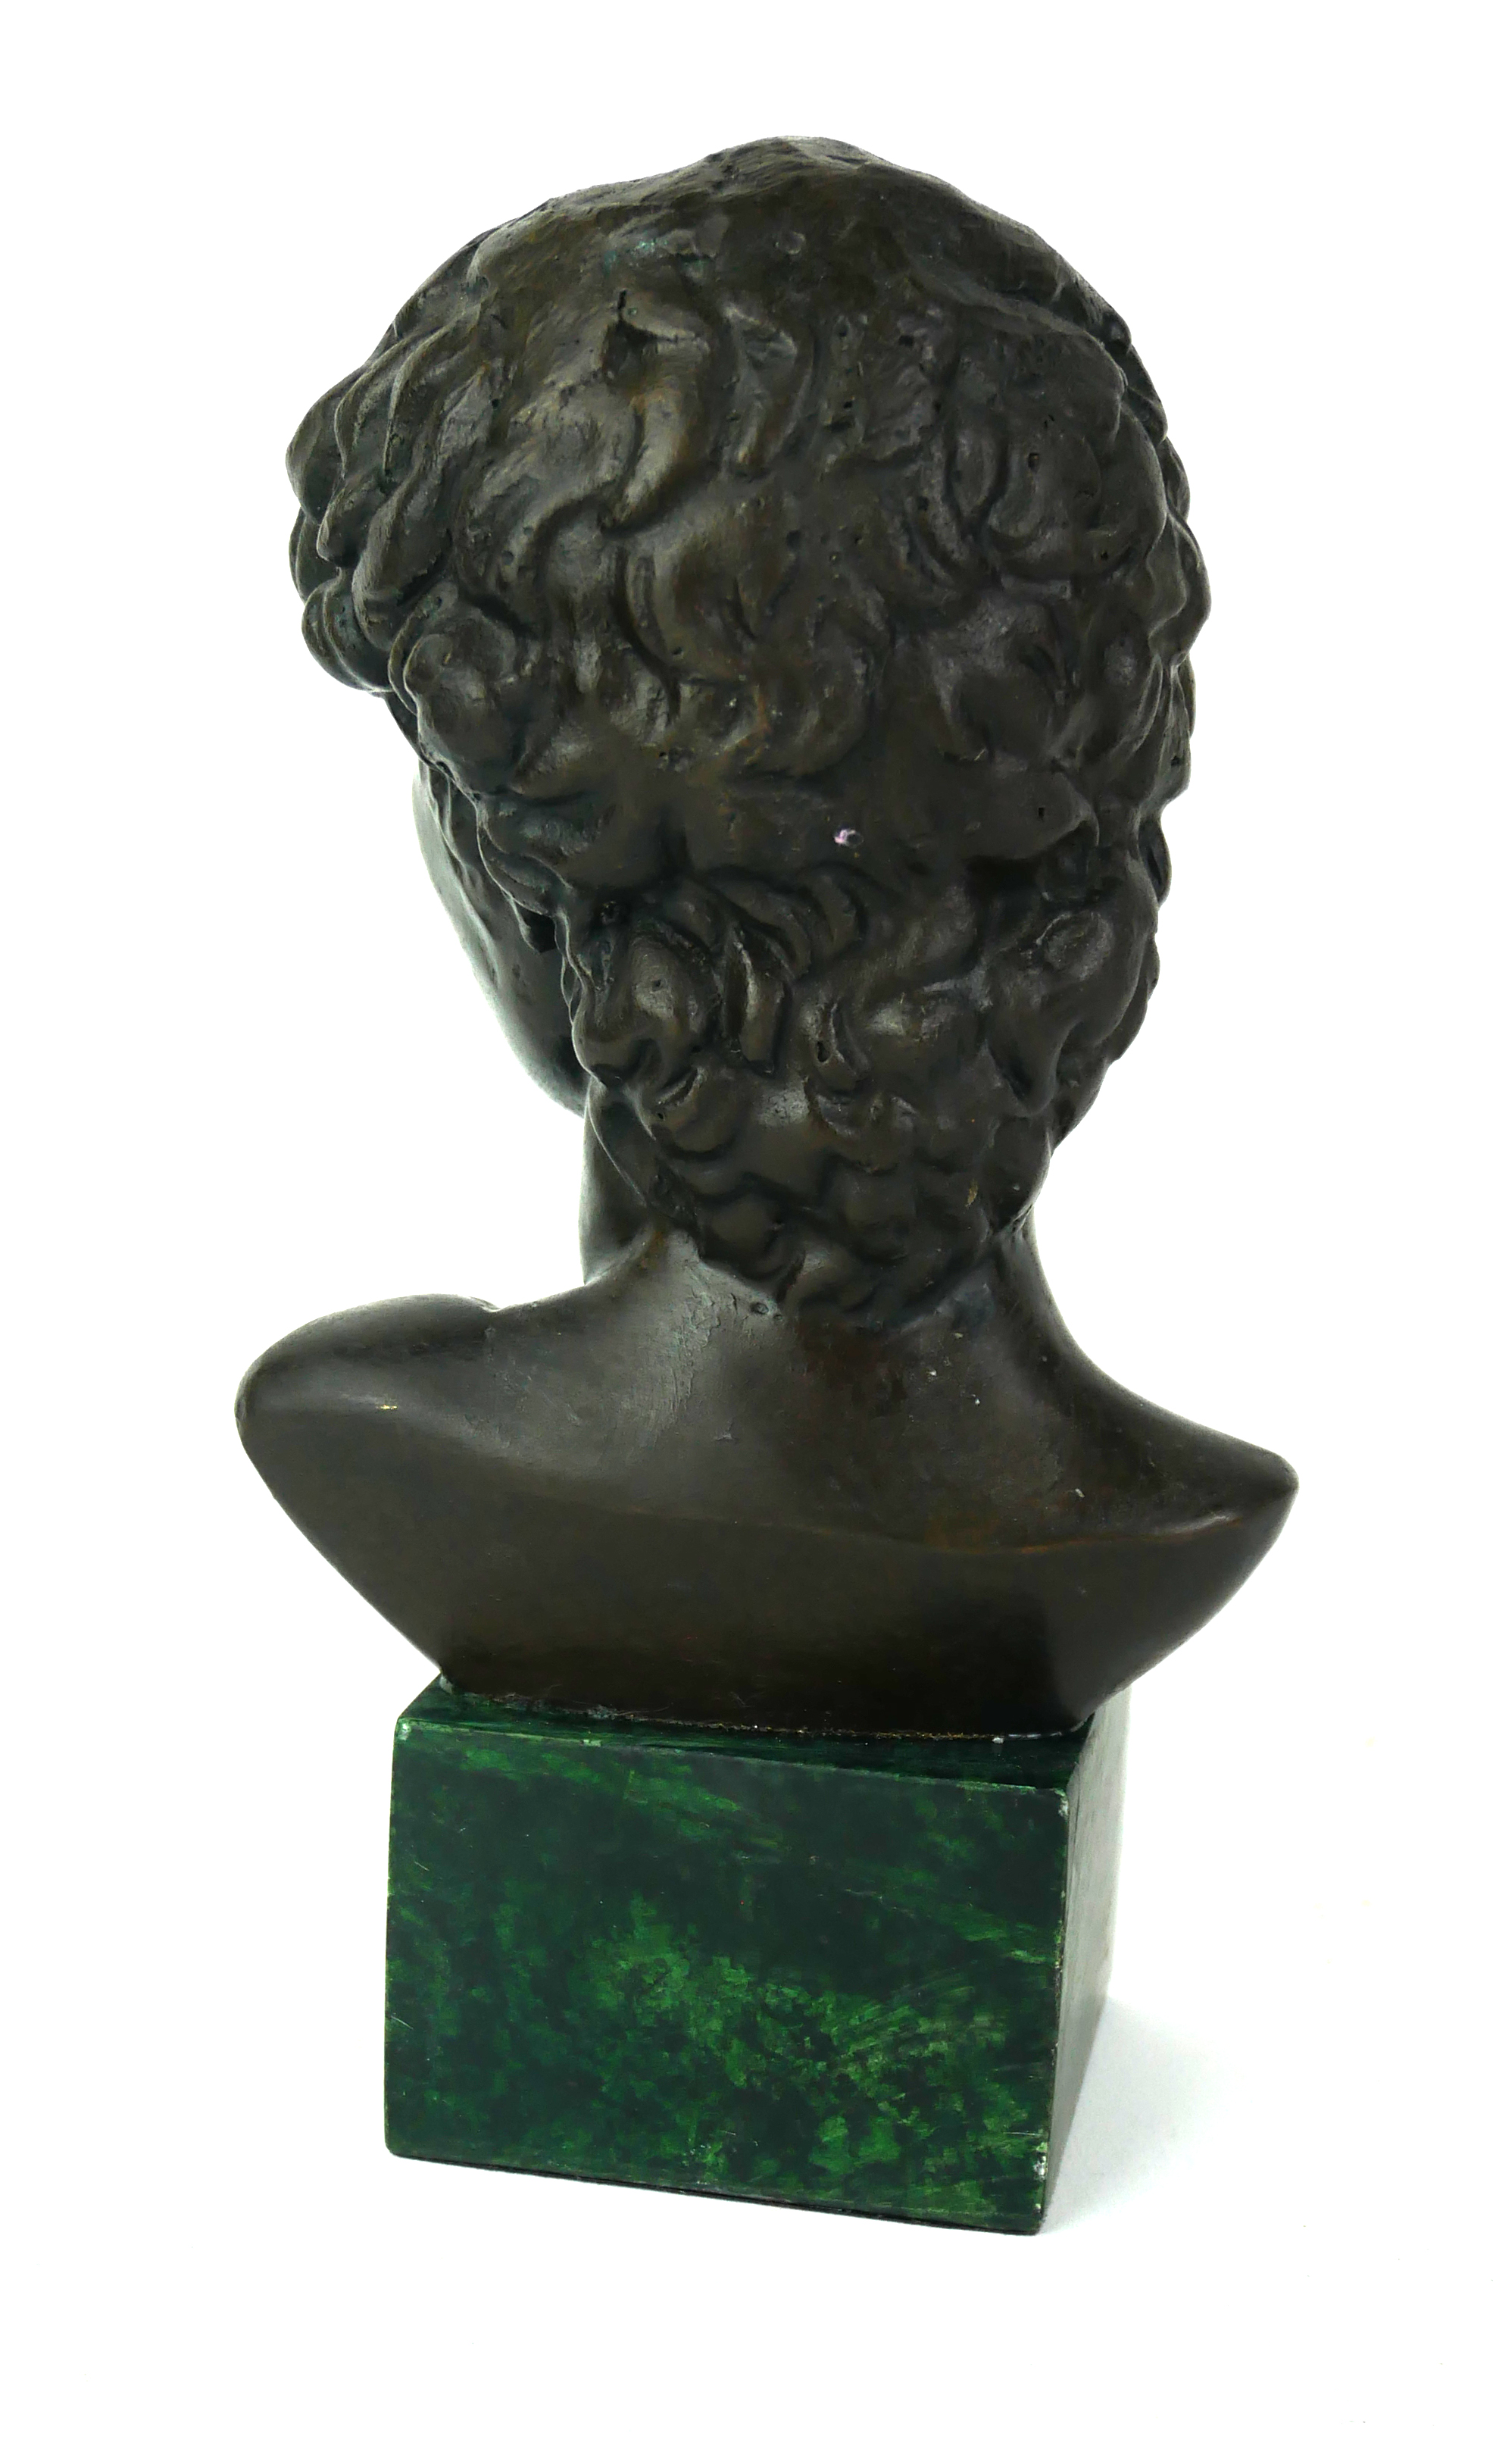 A MODERN BRONZE BUST OF DAVID Raised on a modern square green marble base. (h 17cm) - Image 2 of 2